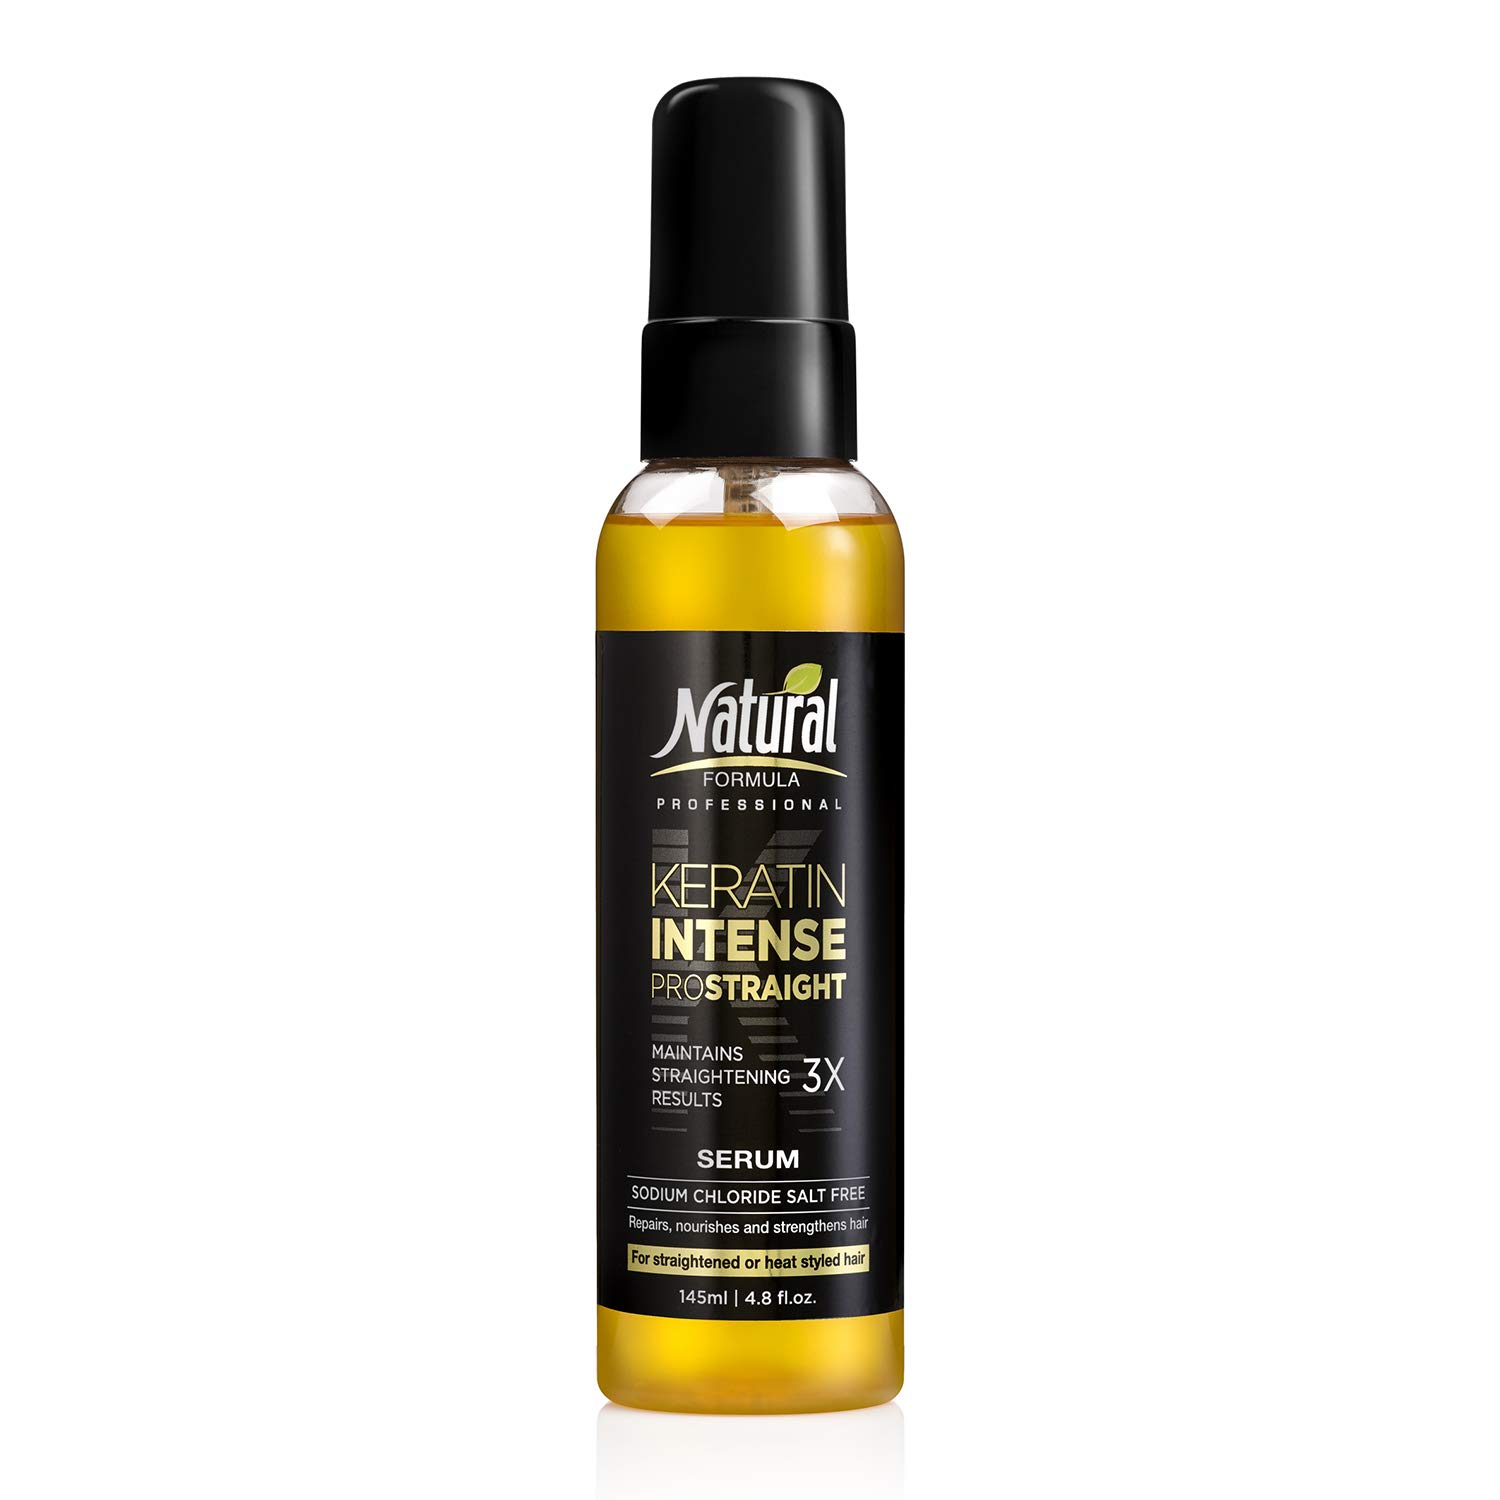 Natural Formula Keratin Intense Hair Serum – Keratin Infused Dry Damaged Hair Serum - Sodium Chloride Salt-Free Keratin Hair Serum – Hair Repair Treatment For Frizz Free Straightened Hair 4.8 fl.oz